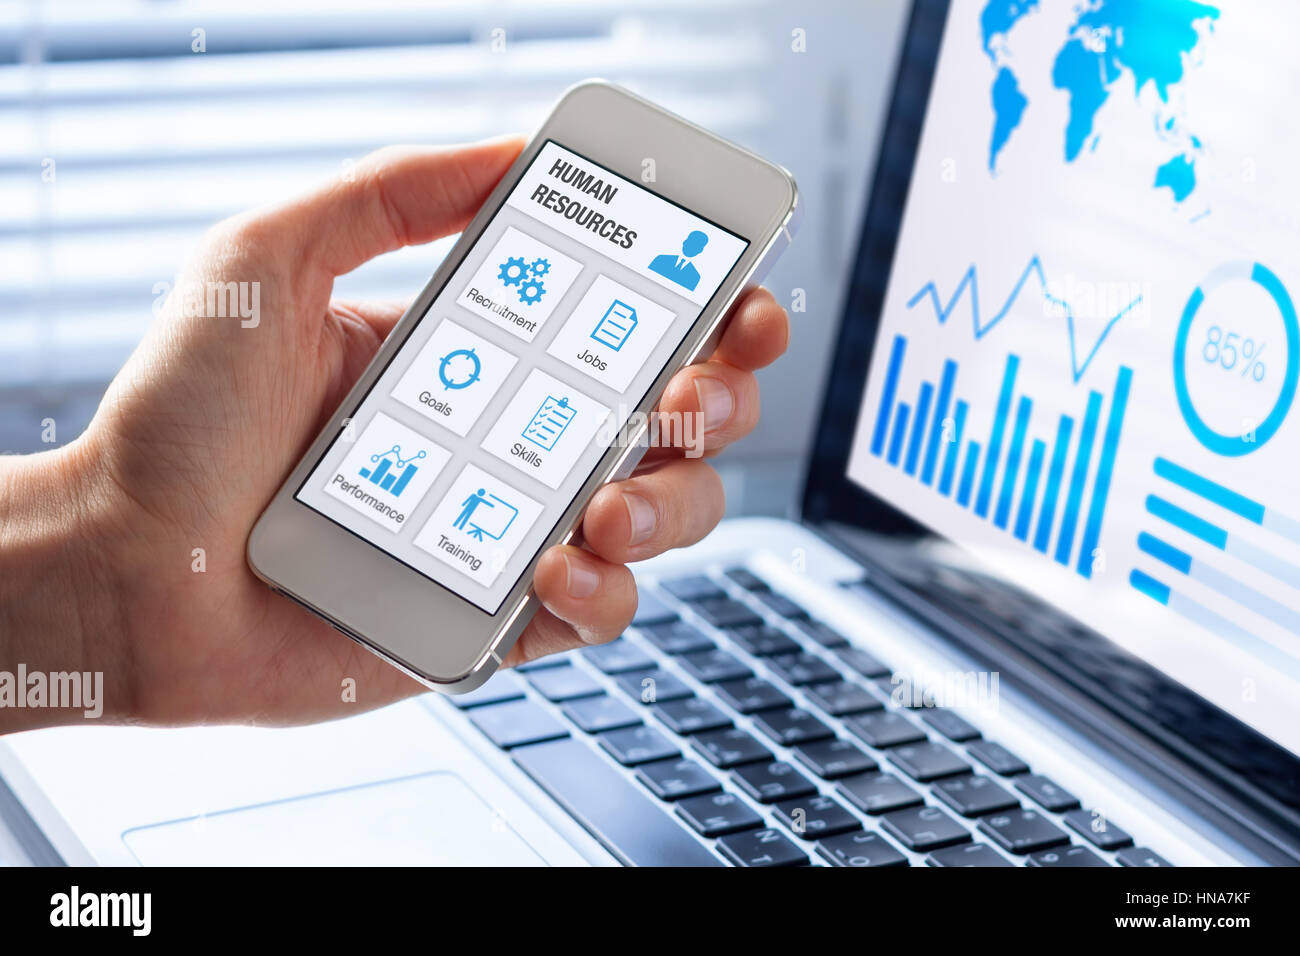 Human resources (HR) management app concept on a mobile phone screen with a person hand and office interior background, Stock Photo